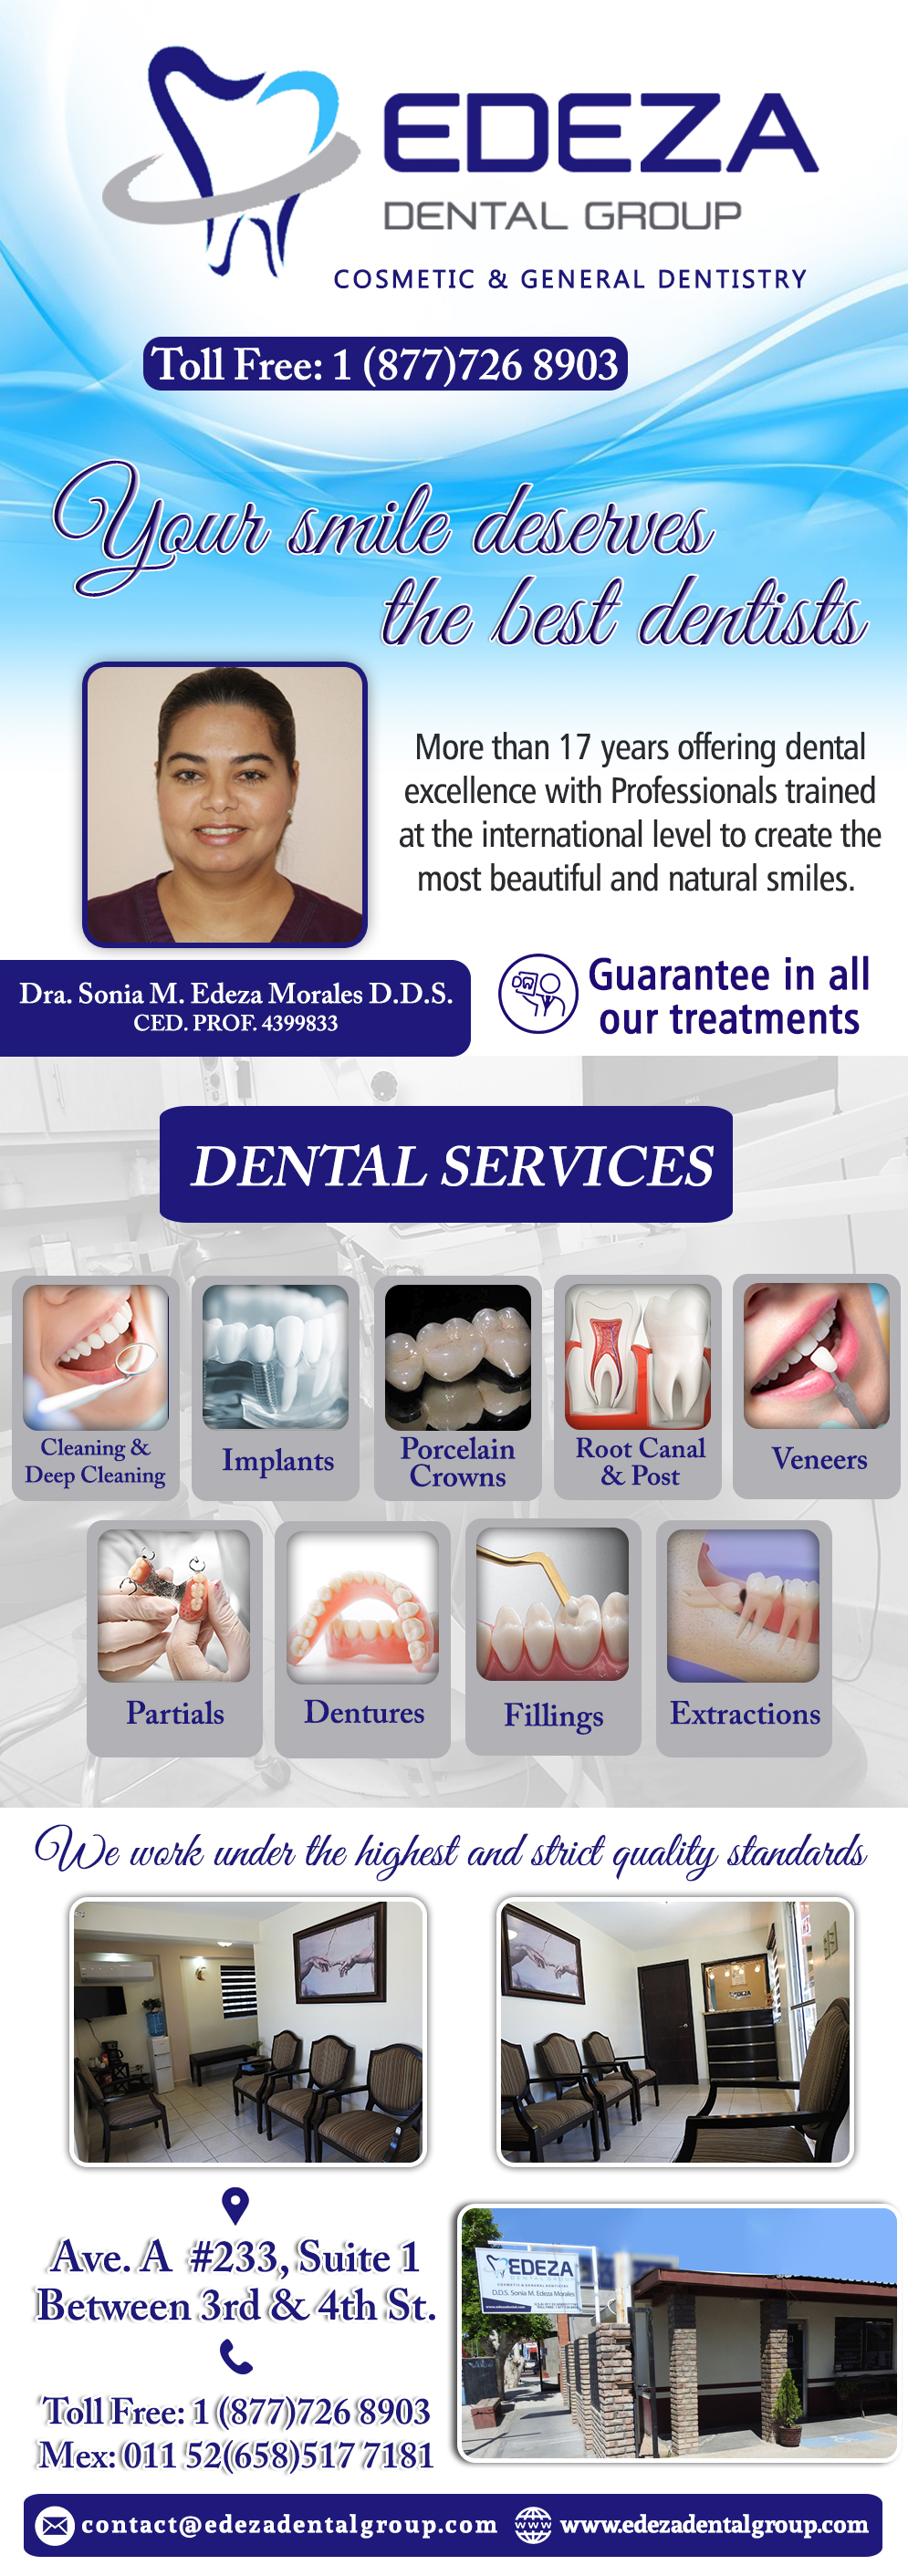 EDEZA DENTAL GROUP  Dra. Sonia M. Edeza Morales DDS in Algodones  in Algodones  Dra. Sonia Edeza DDS Your 